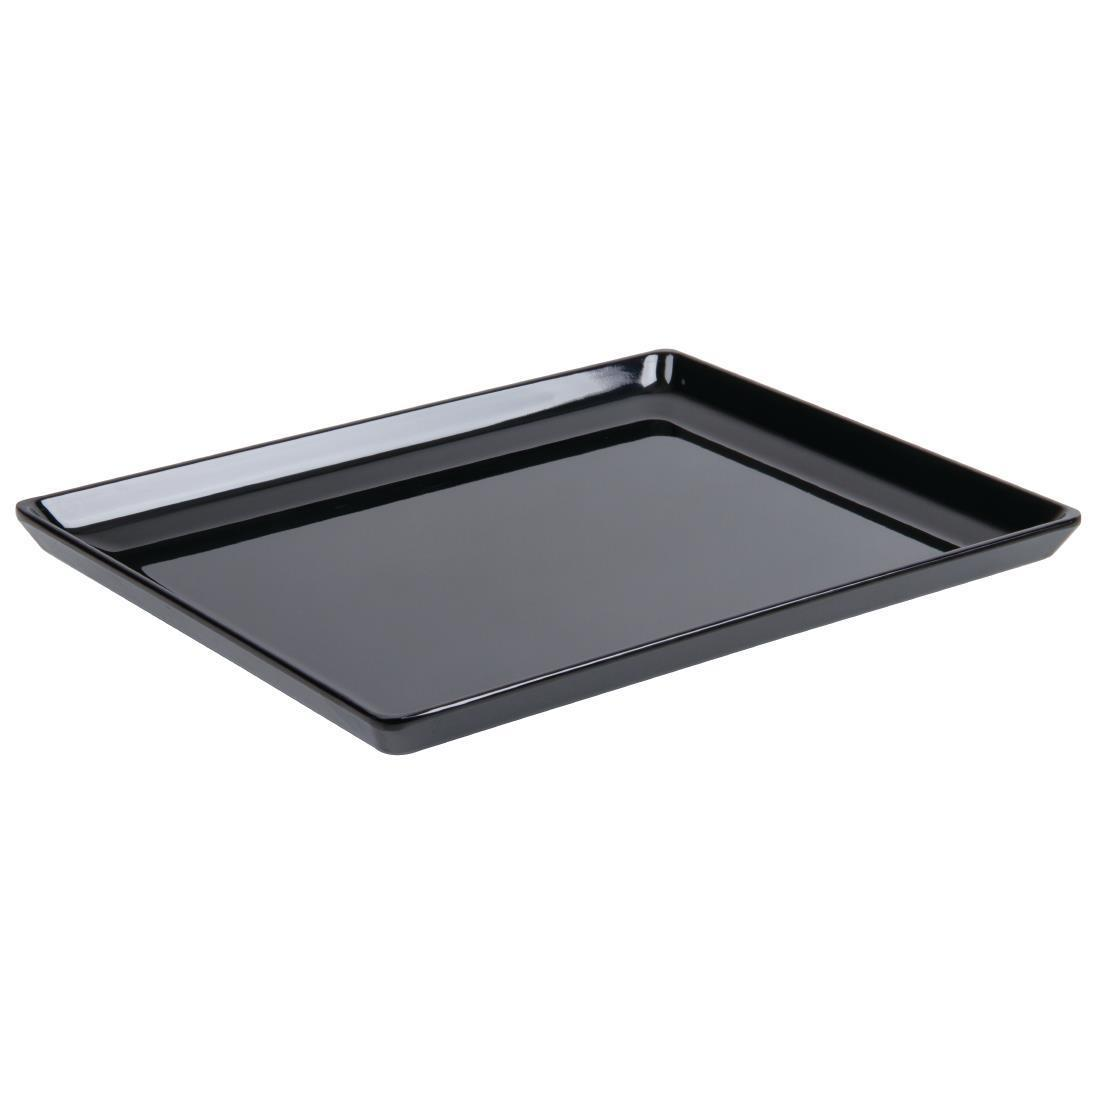 APS Float Melamine Tray Black GN 1/2 - Each - GF077